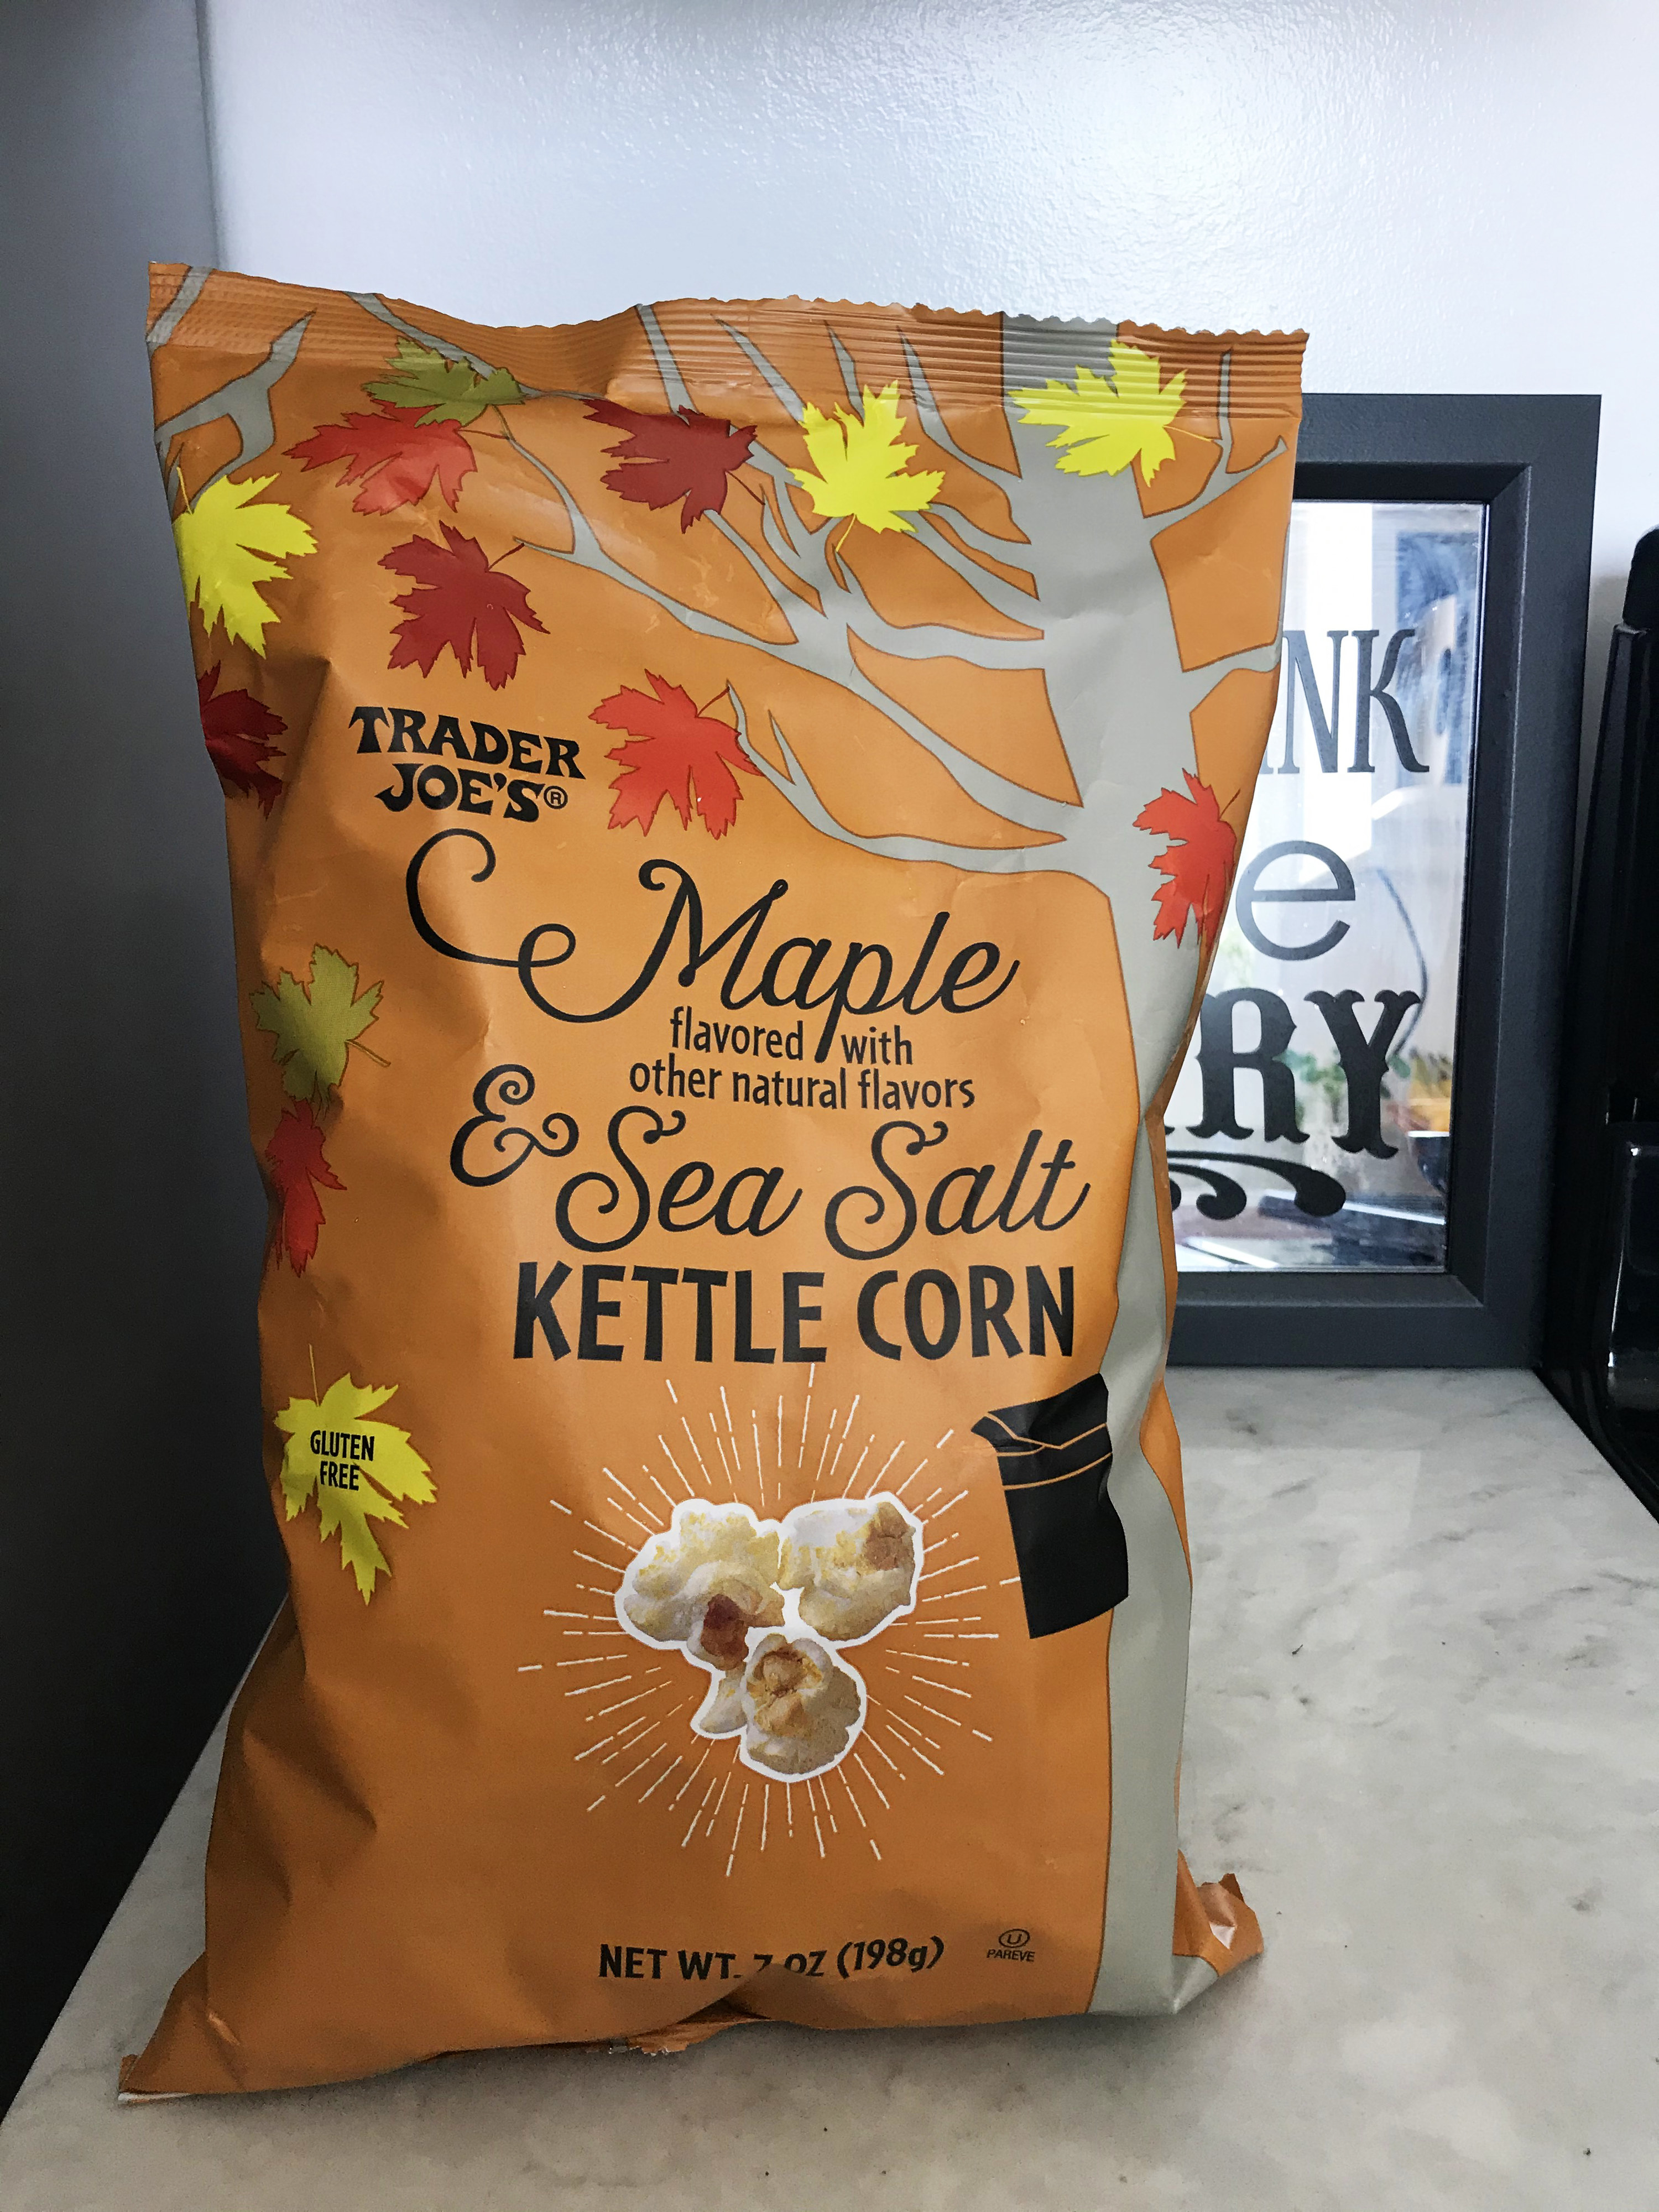 A bag of kettle corn sits upright on a marble counter